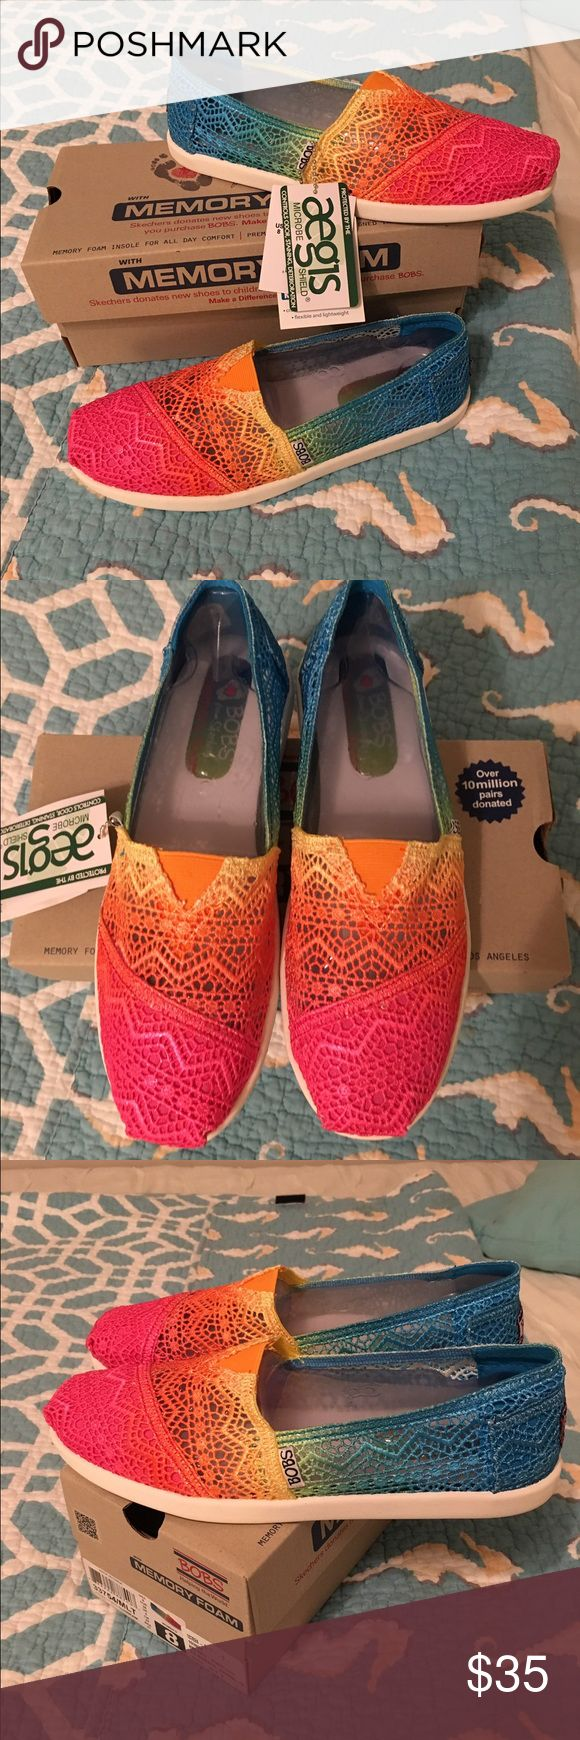 Tye Dye BOBS shoes NWT!  Brand new with tags. Sketchers BOBS slip on shoes size 8. Crochet Tye dye print. Super cute!! Perfect for festivals and summer. They are just too small for me. Skechers Shoes Sneakers